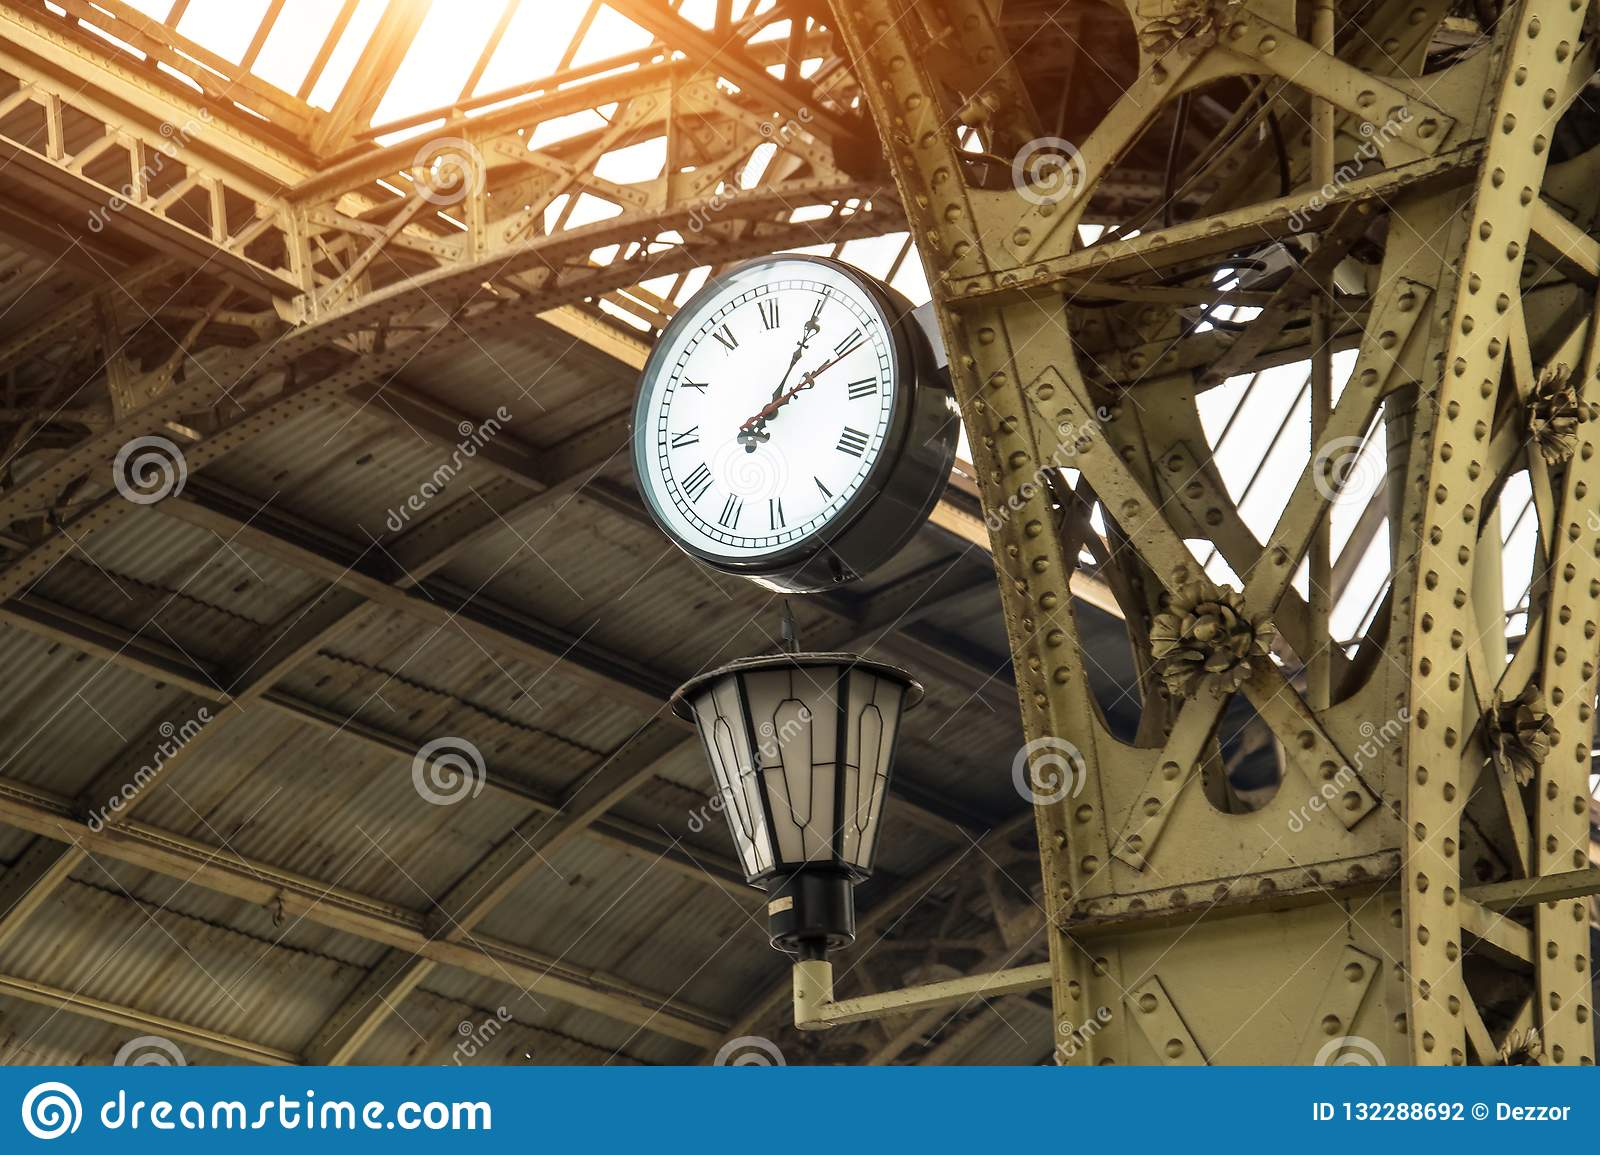 Vintage clock and lantern on train station with building roof